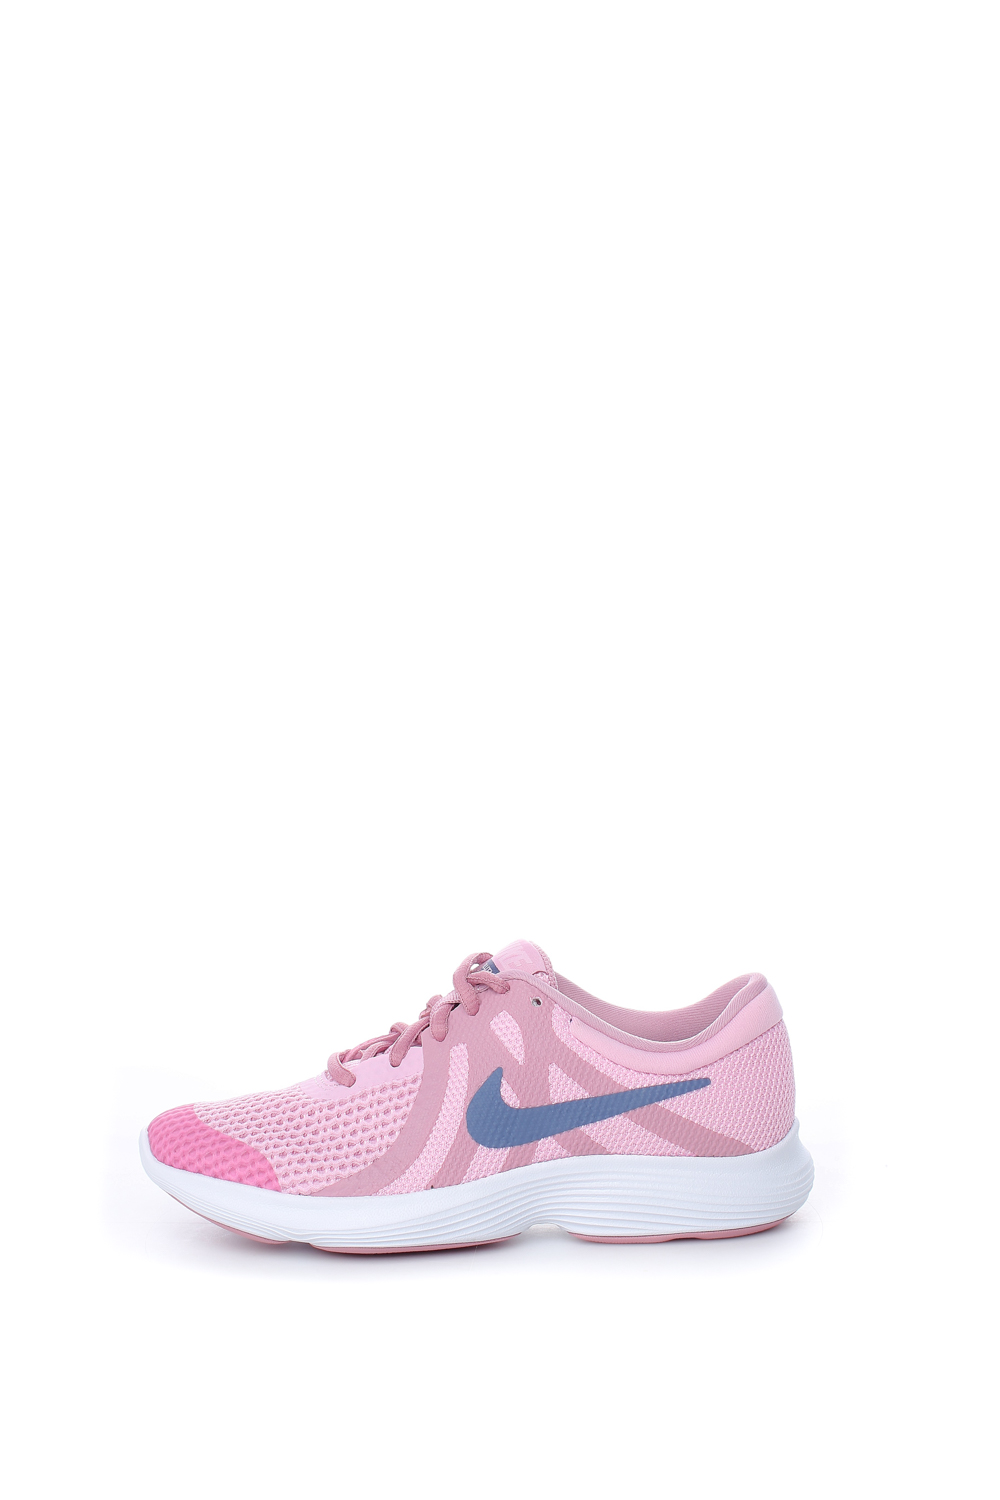 7221a16fab3 -30% Factory Outlet NIKE – Παιδικά παπούτσια NIKE REVOLUTION 4 (GS) ροζ